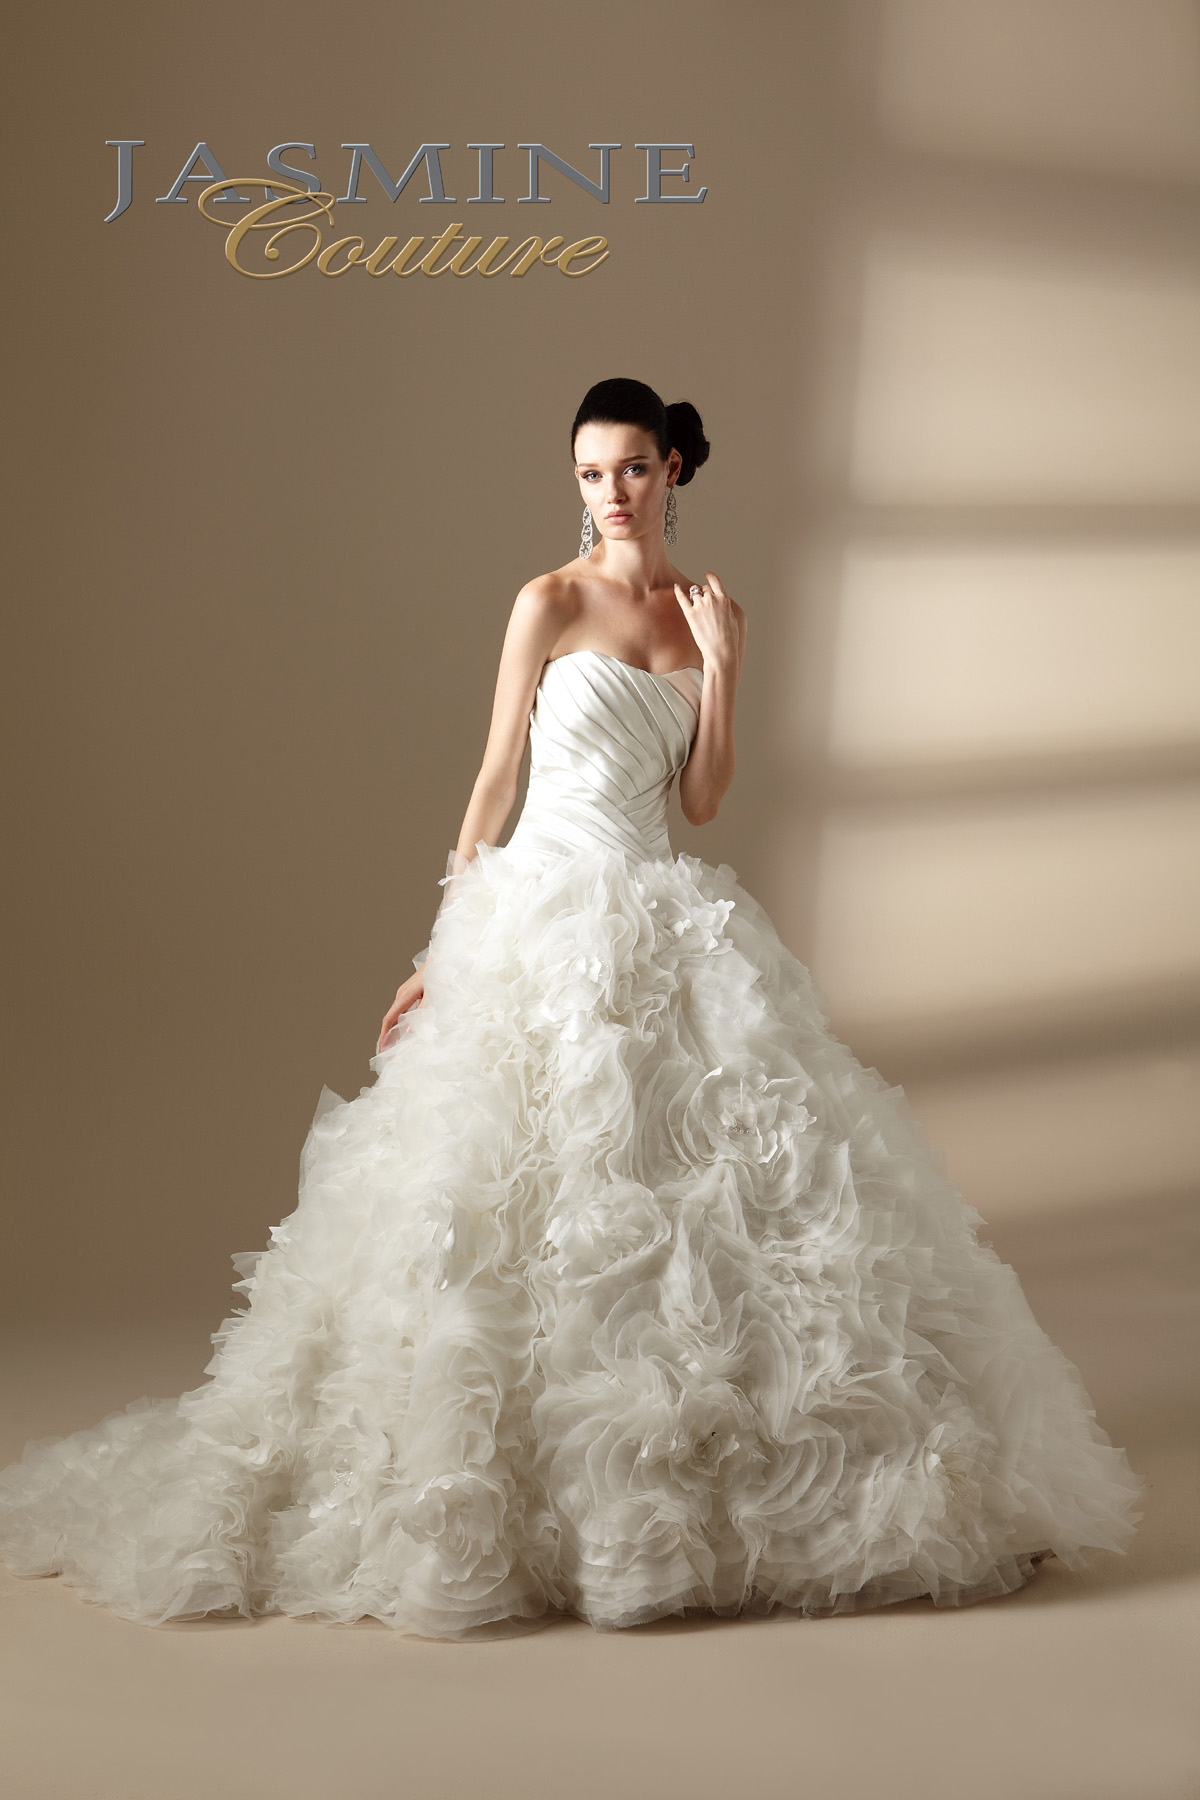 Coutre Wedding Gowns 010 - Coutre Wedding Gowns